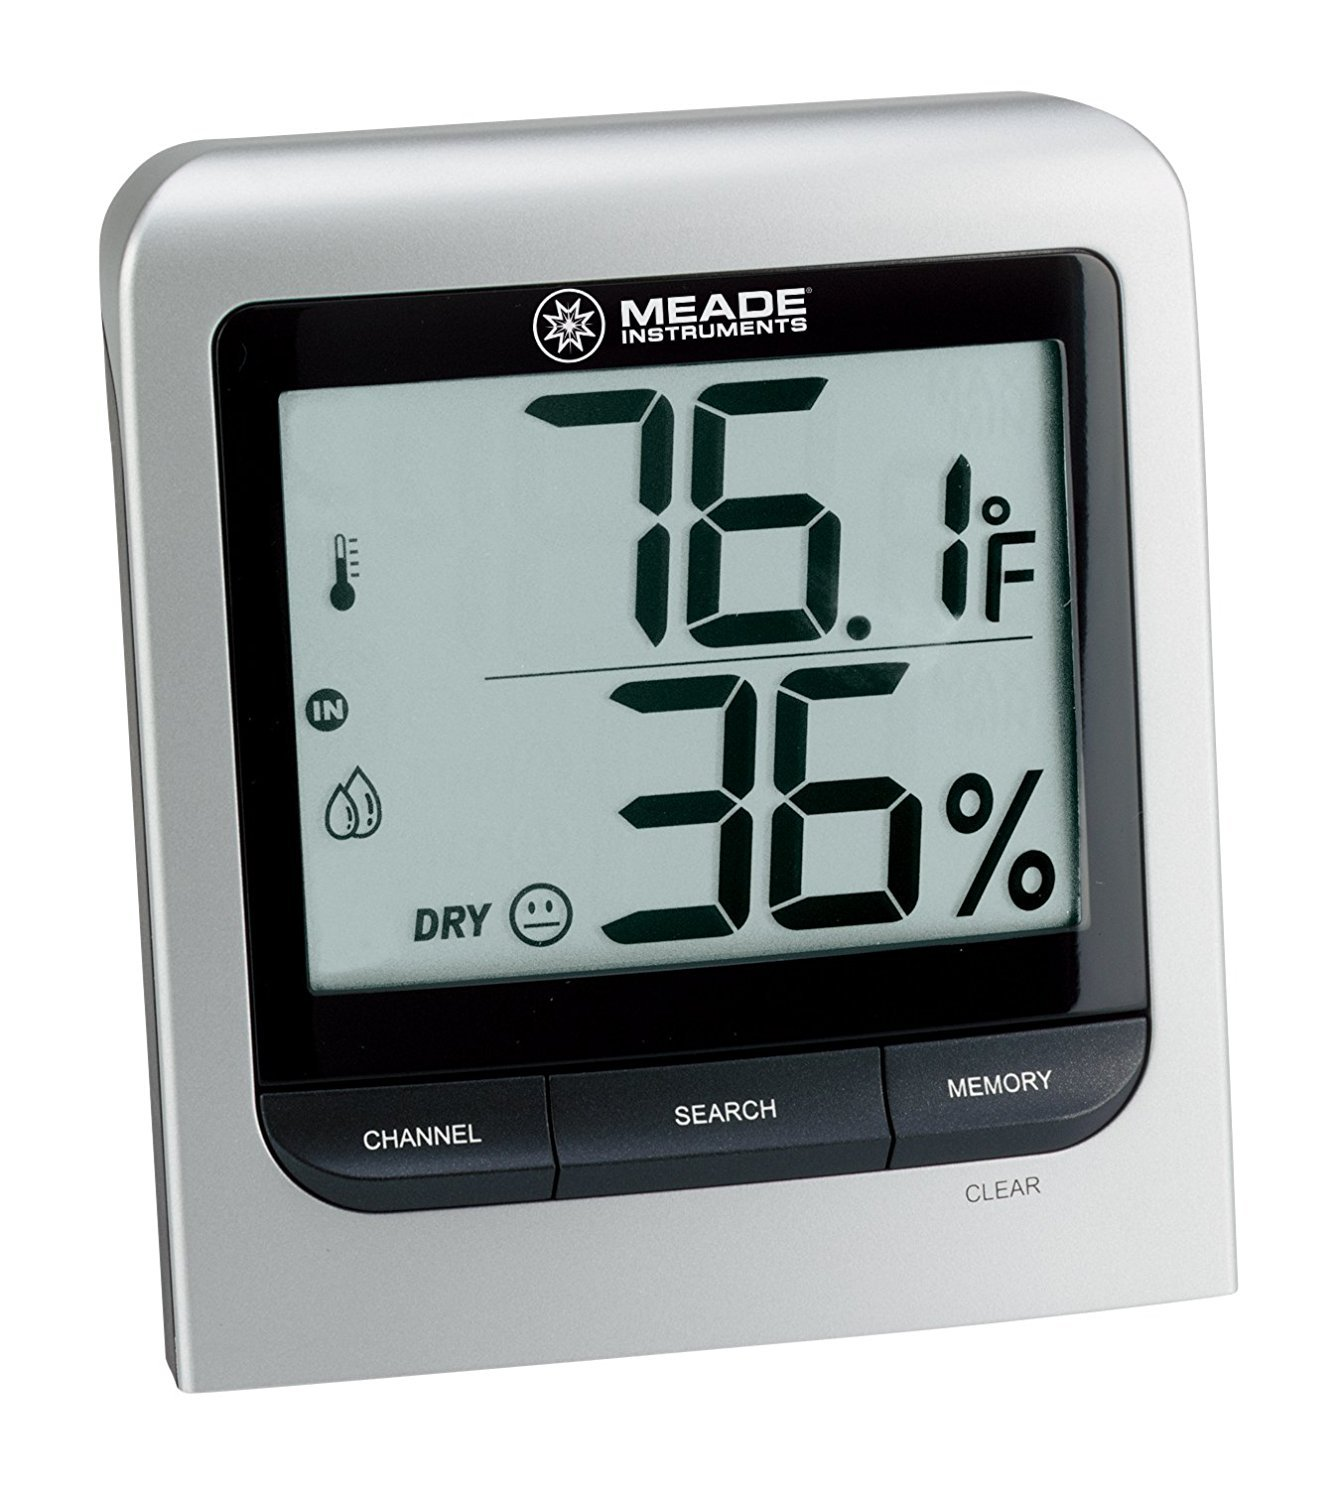 Digital Thermometer Outdoor, Meade Tm005x-m Hygrometer Digital Thermometer Indoor